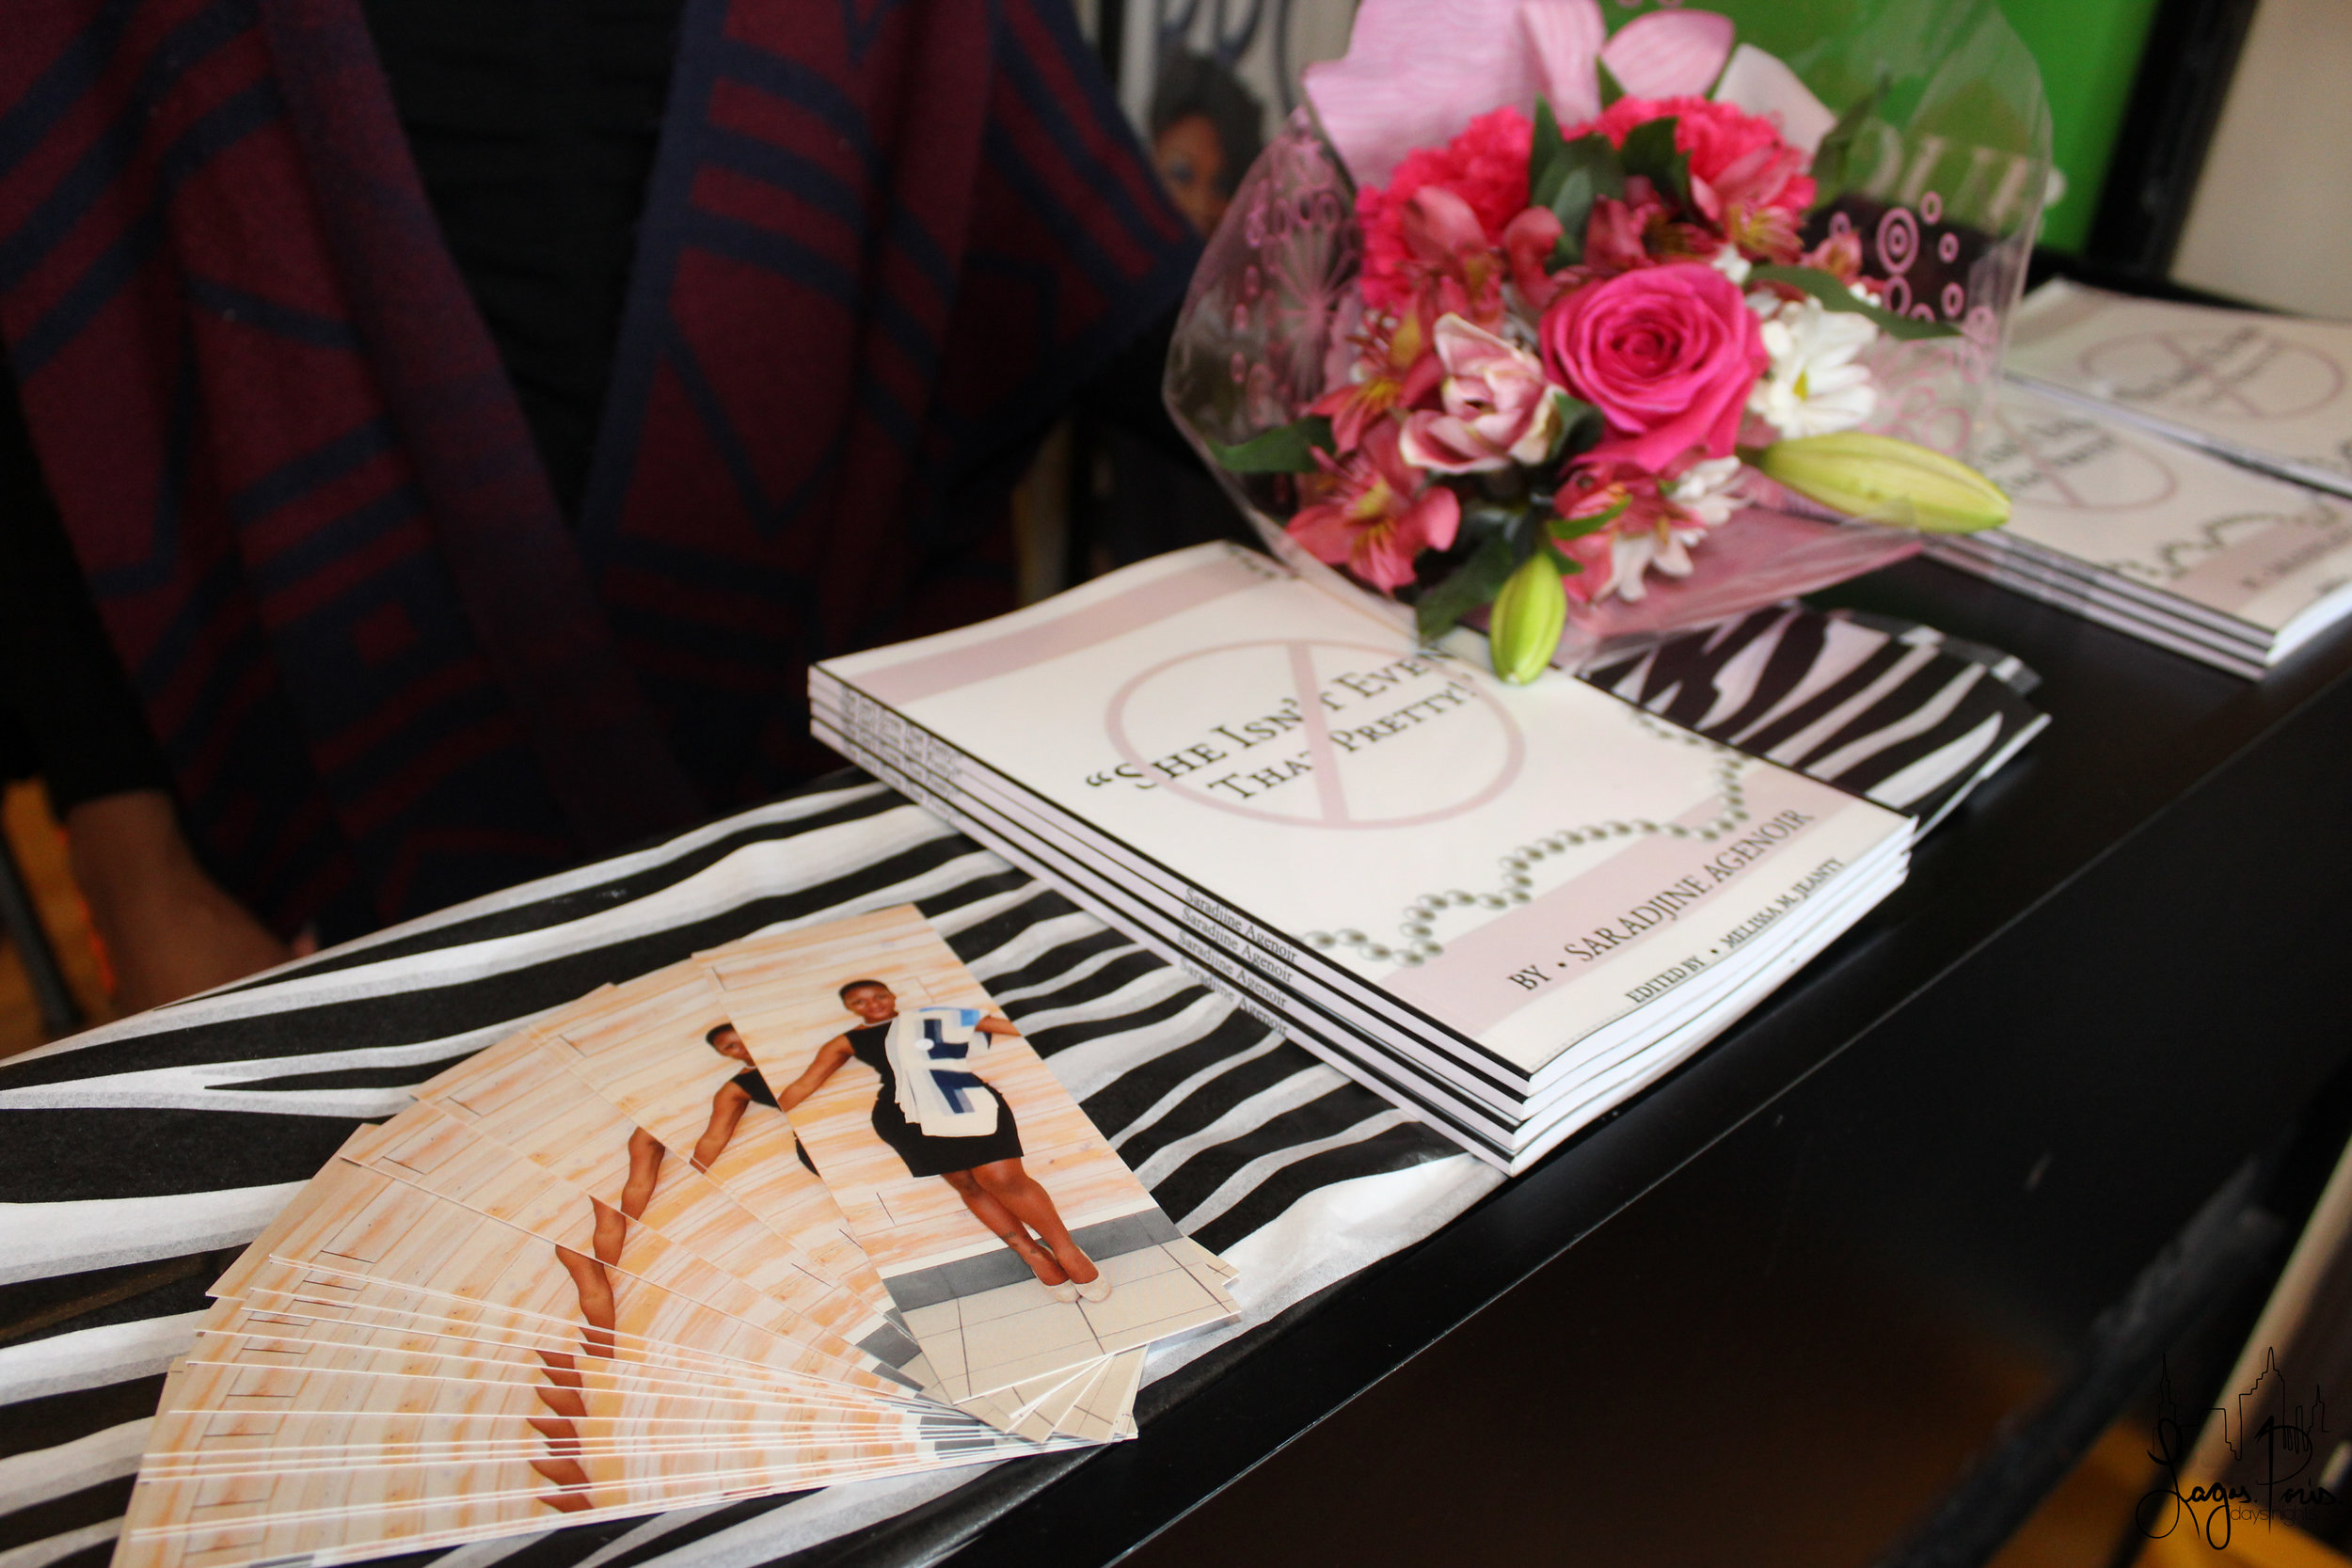 Guests received one of Agenoir's signature bookmarks.